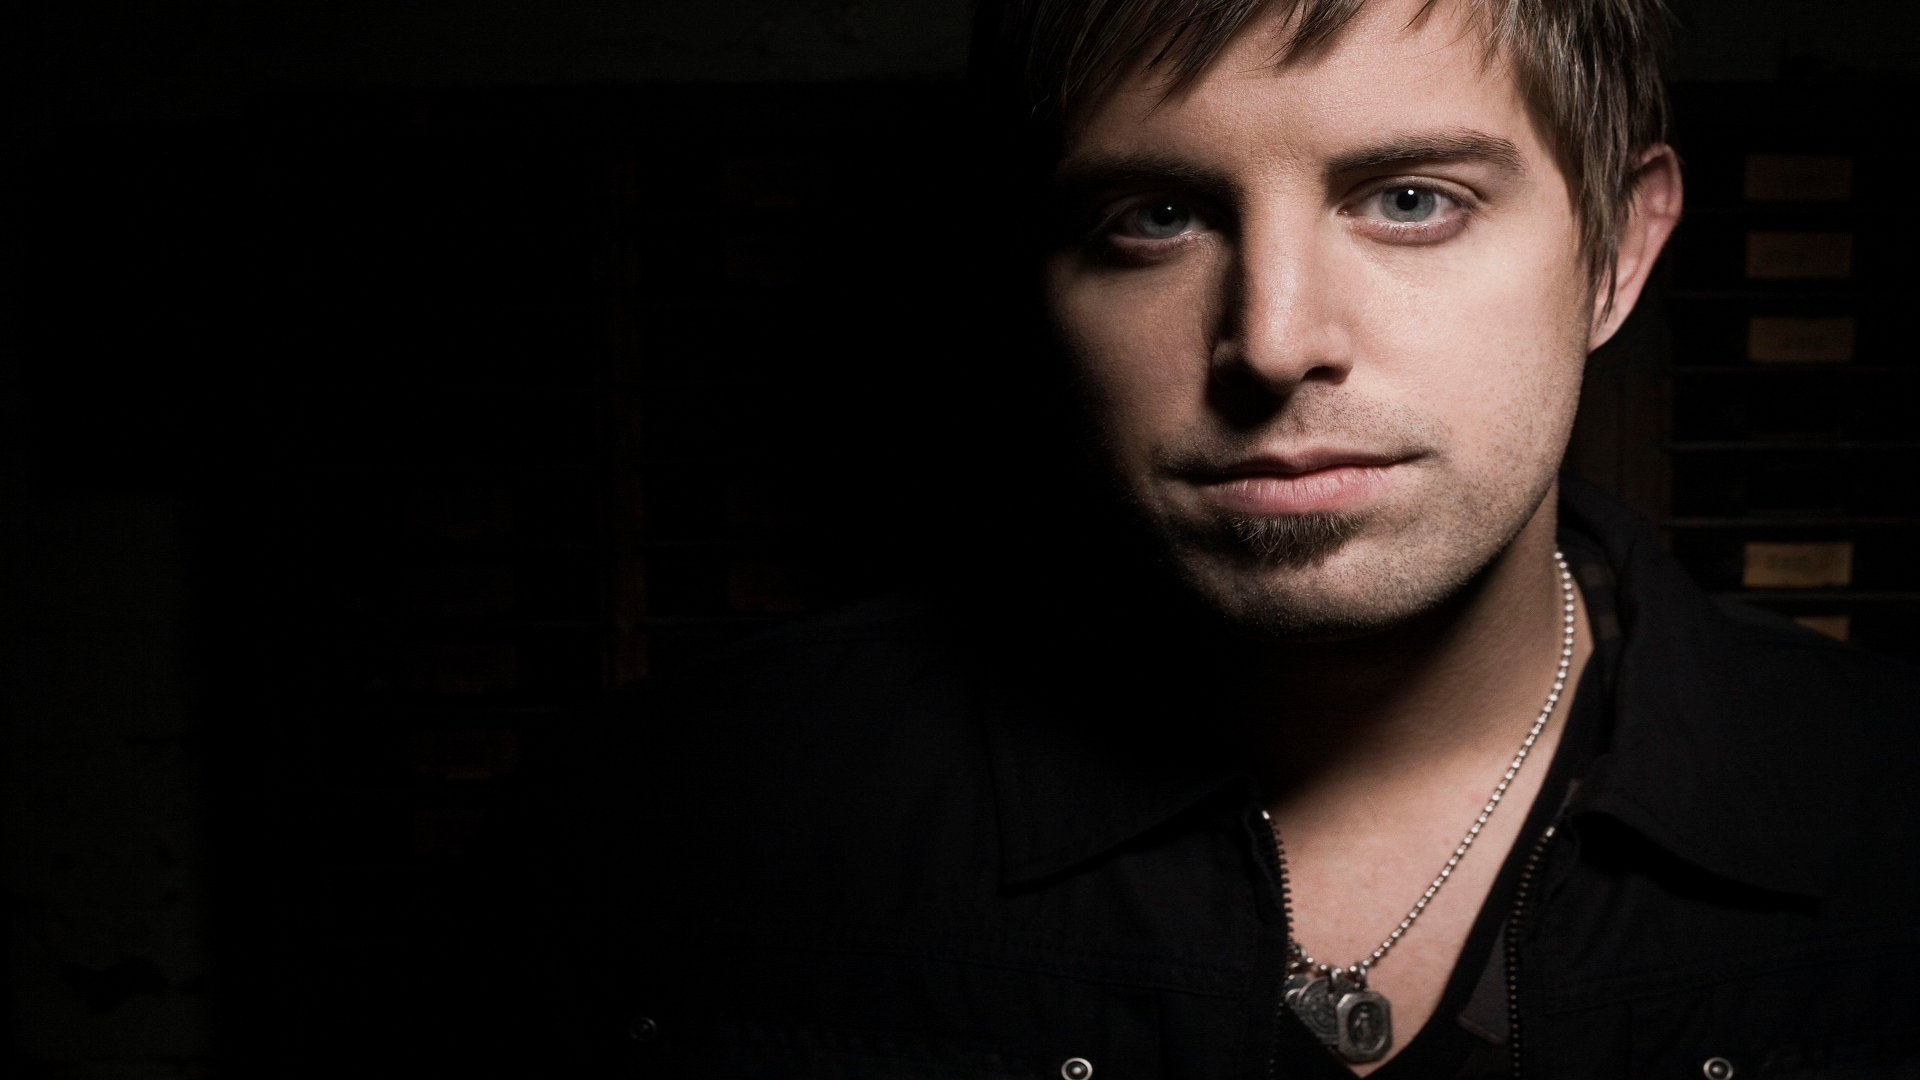 Download Wallpaper 1920x1080 Jeremy Camp, Face, Bristle